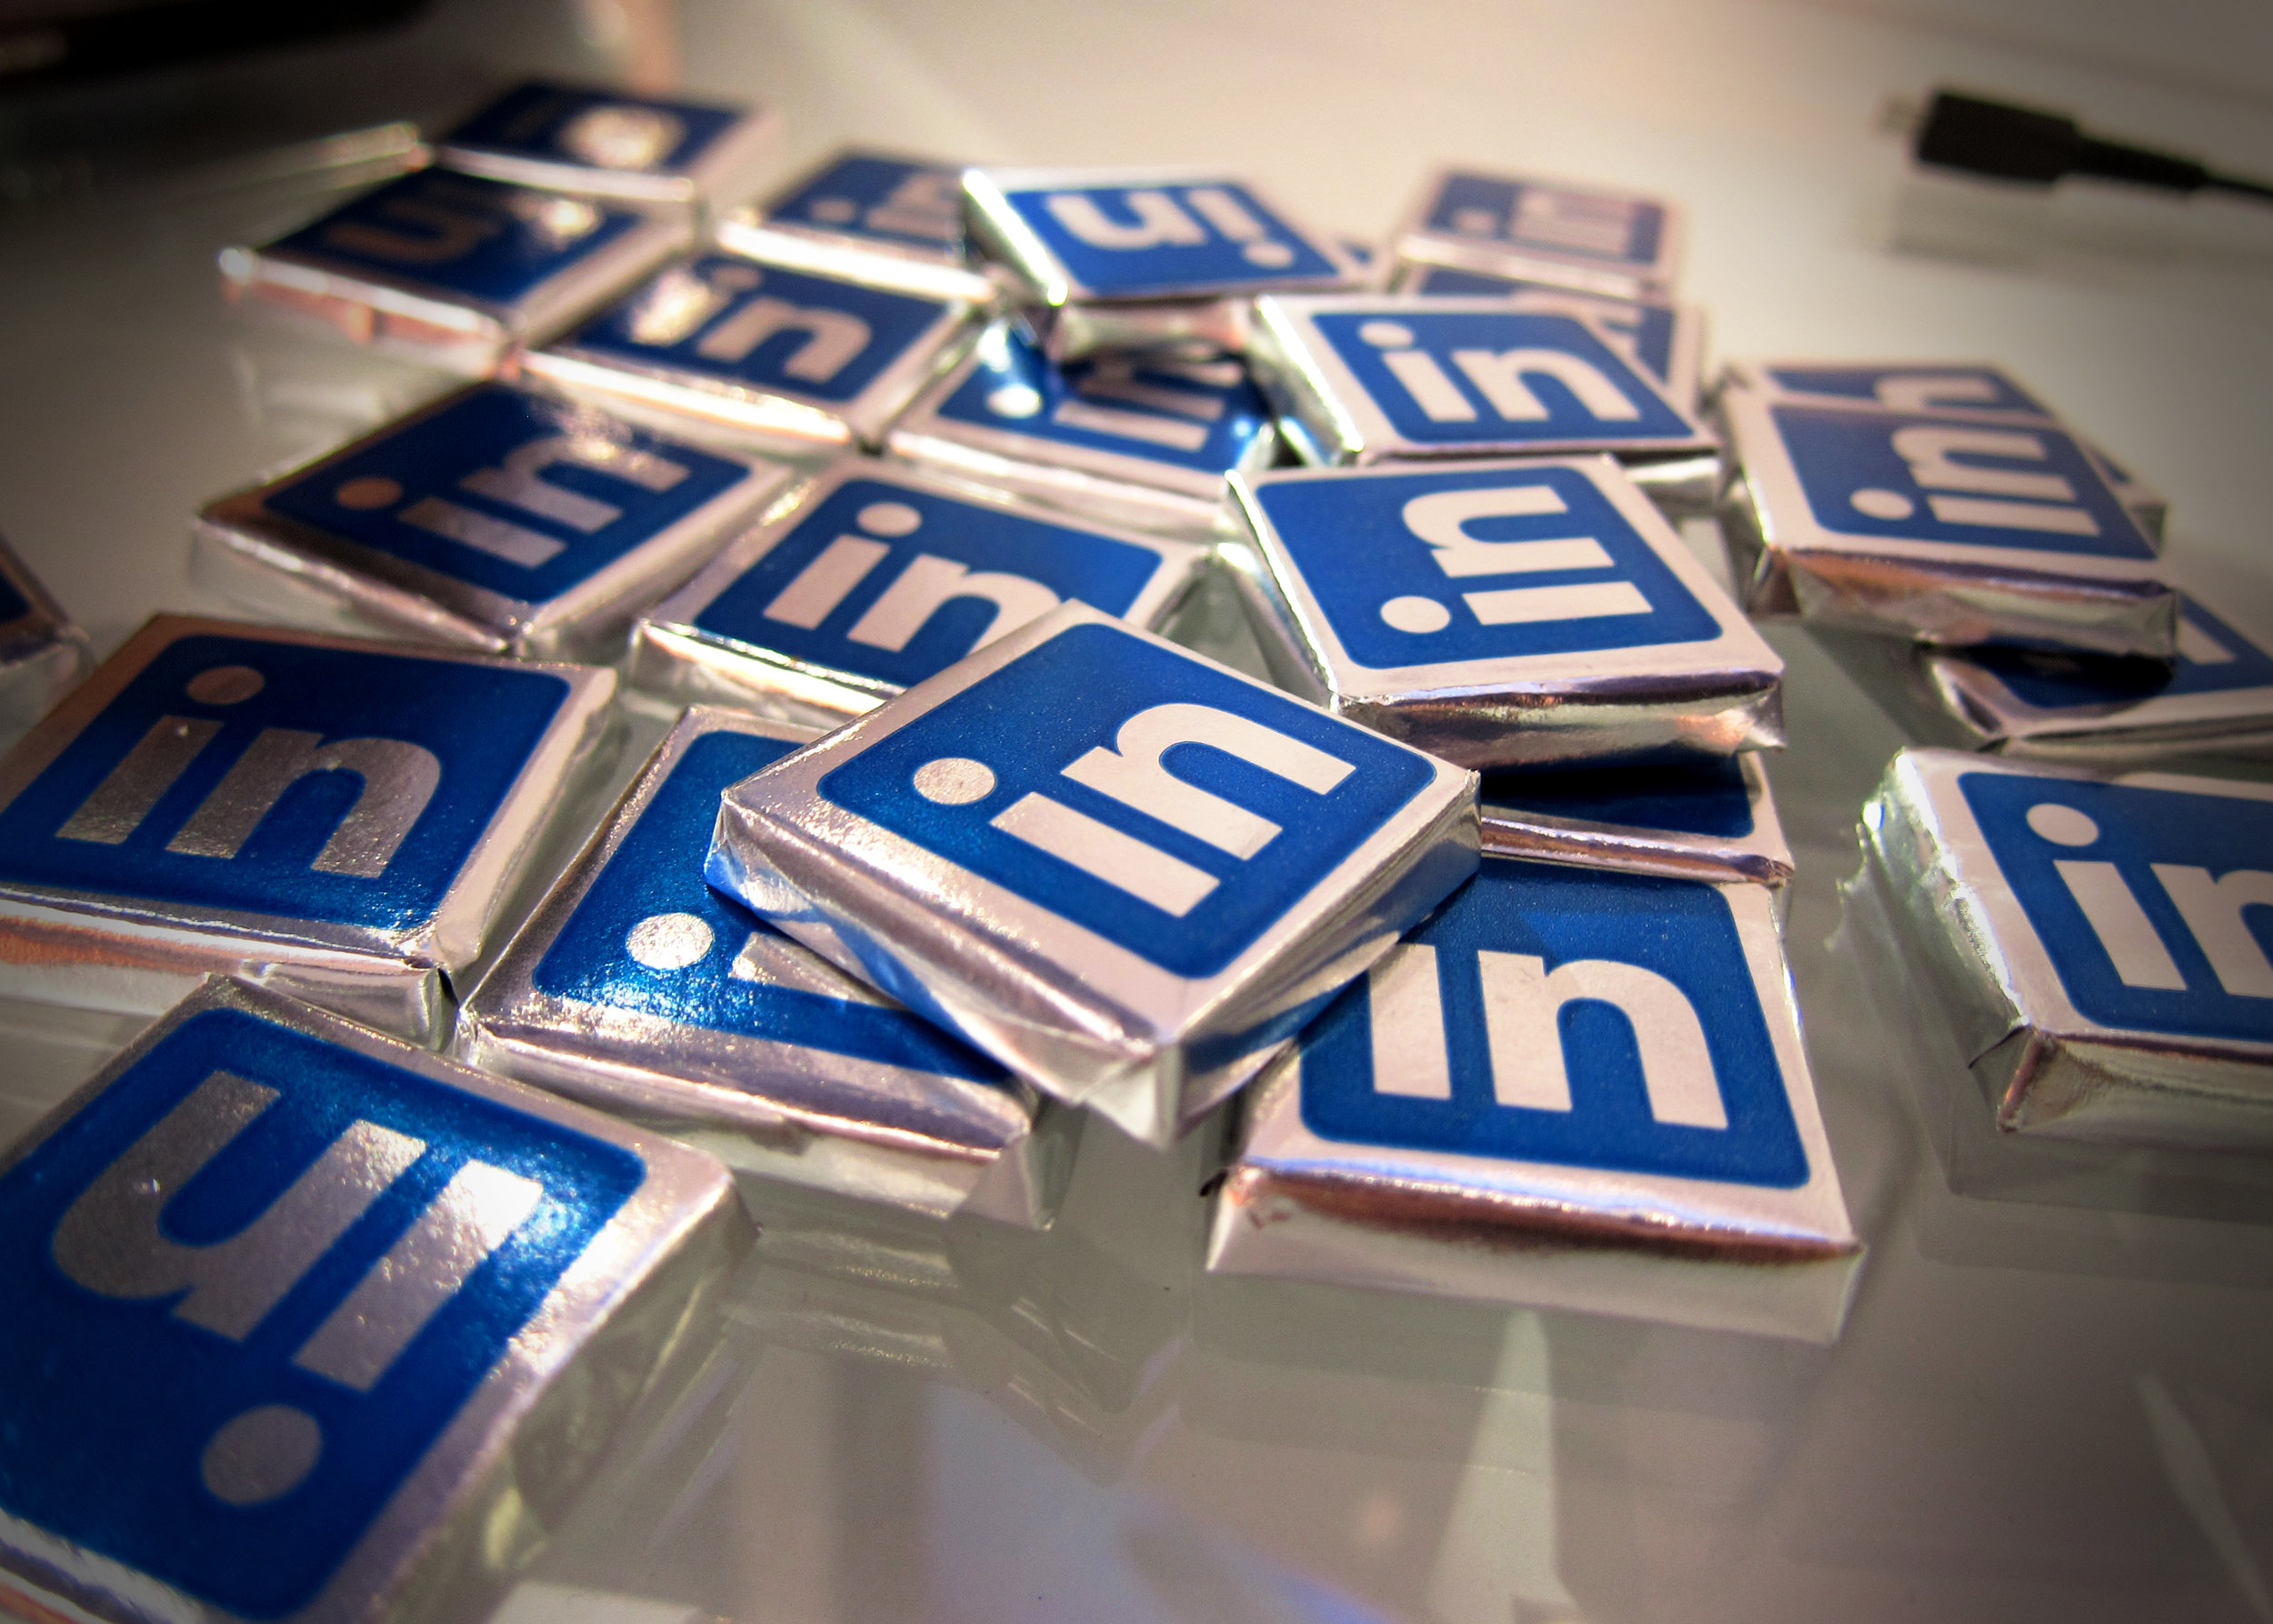 Linkedin_Chocolates.jpg